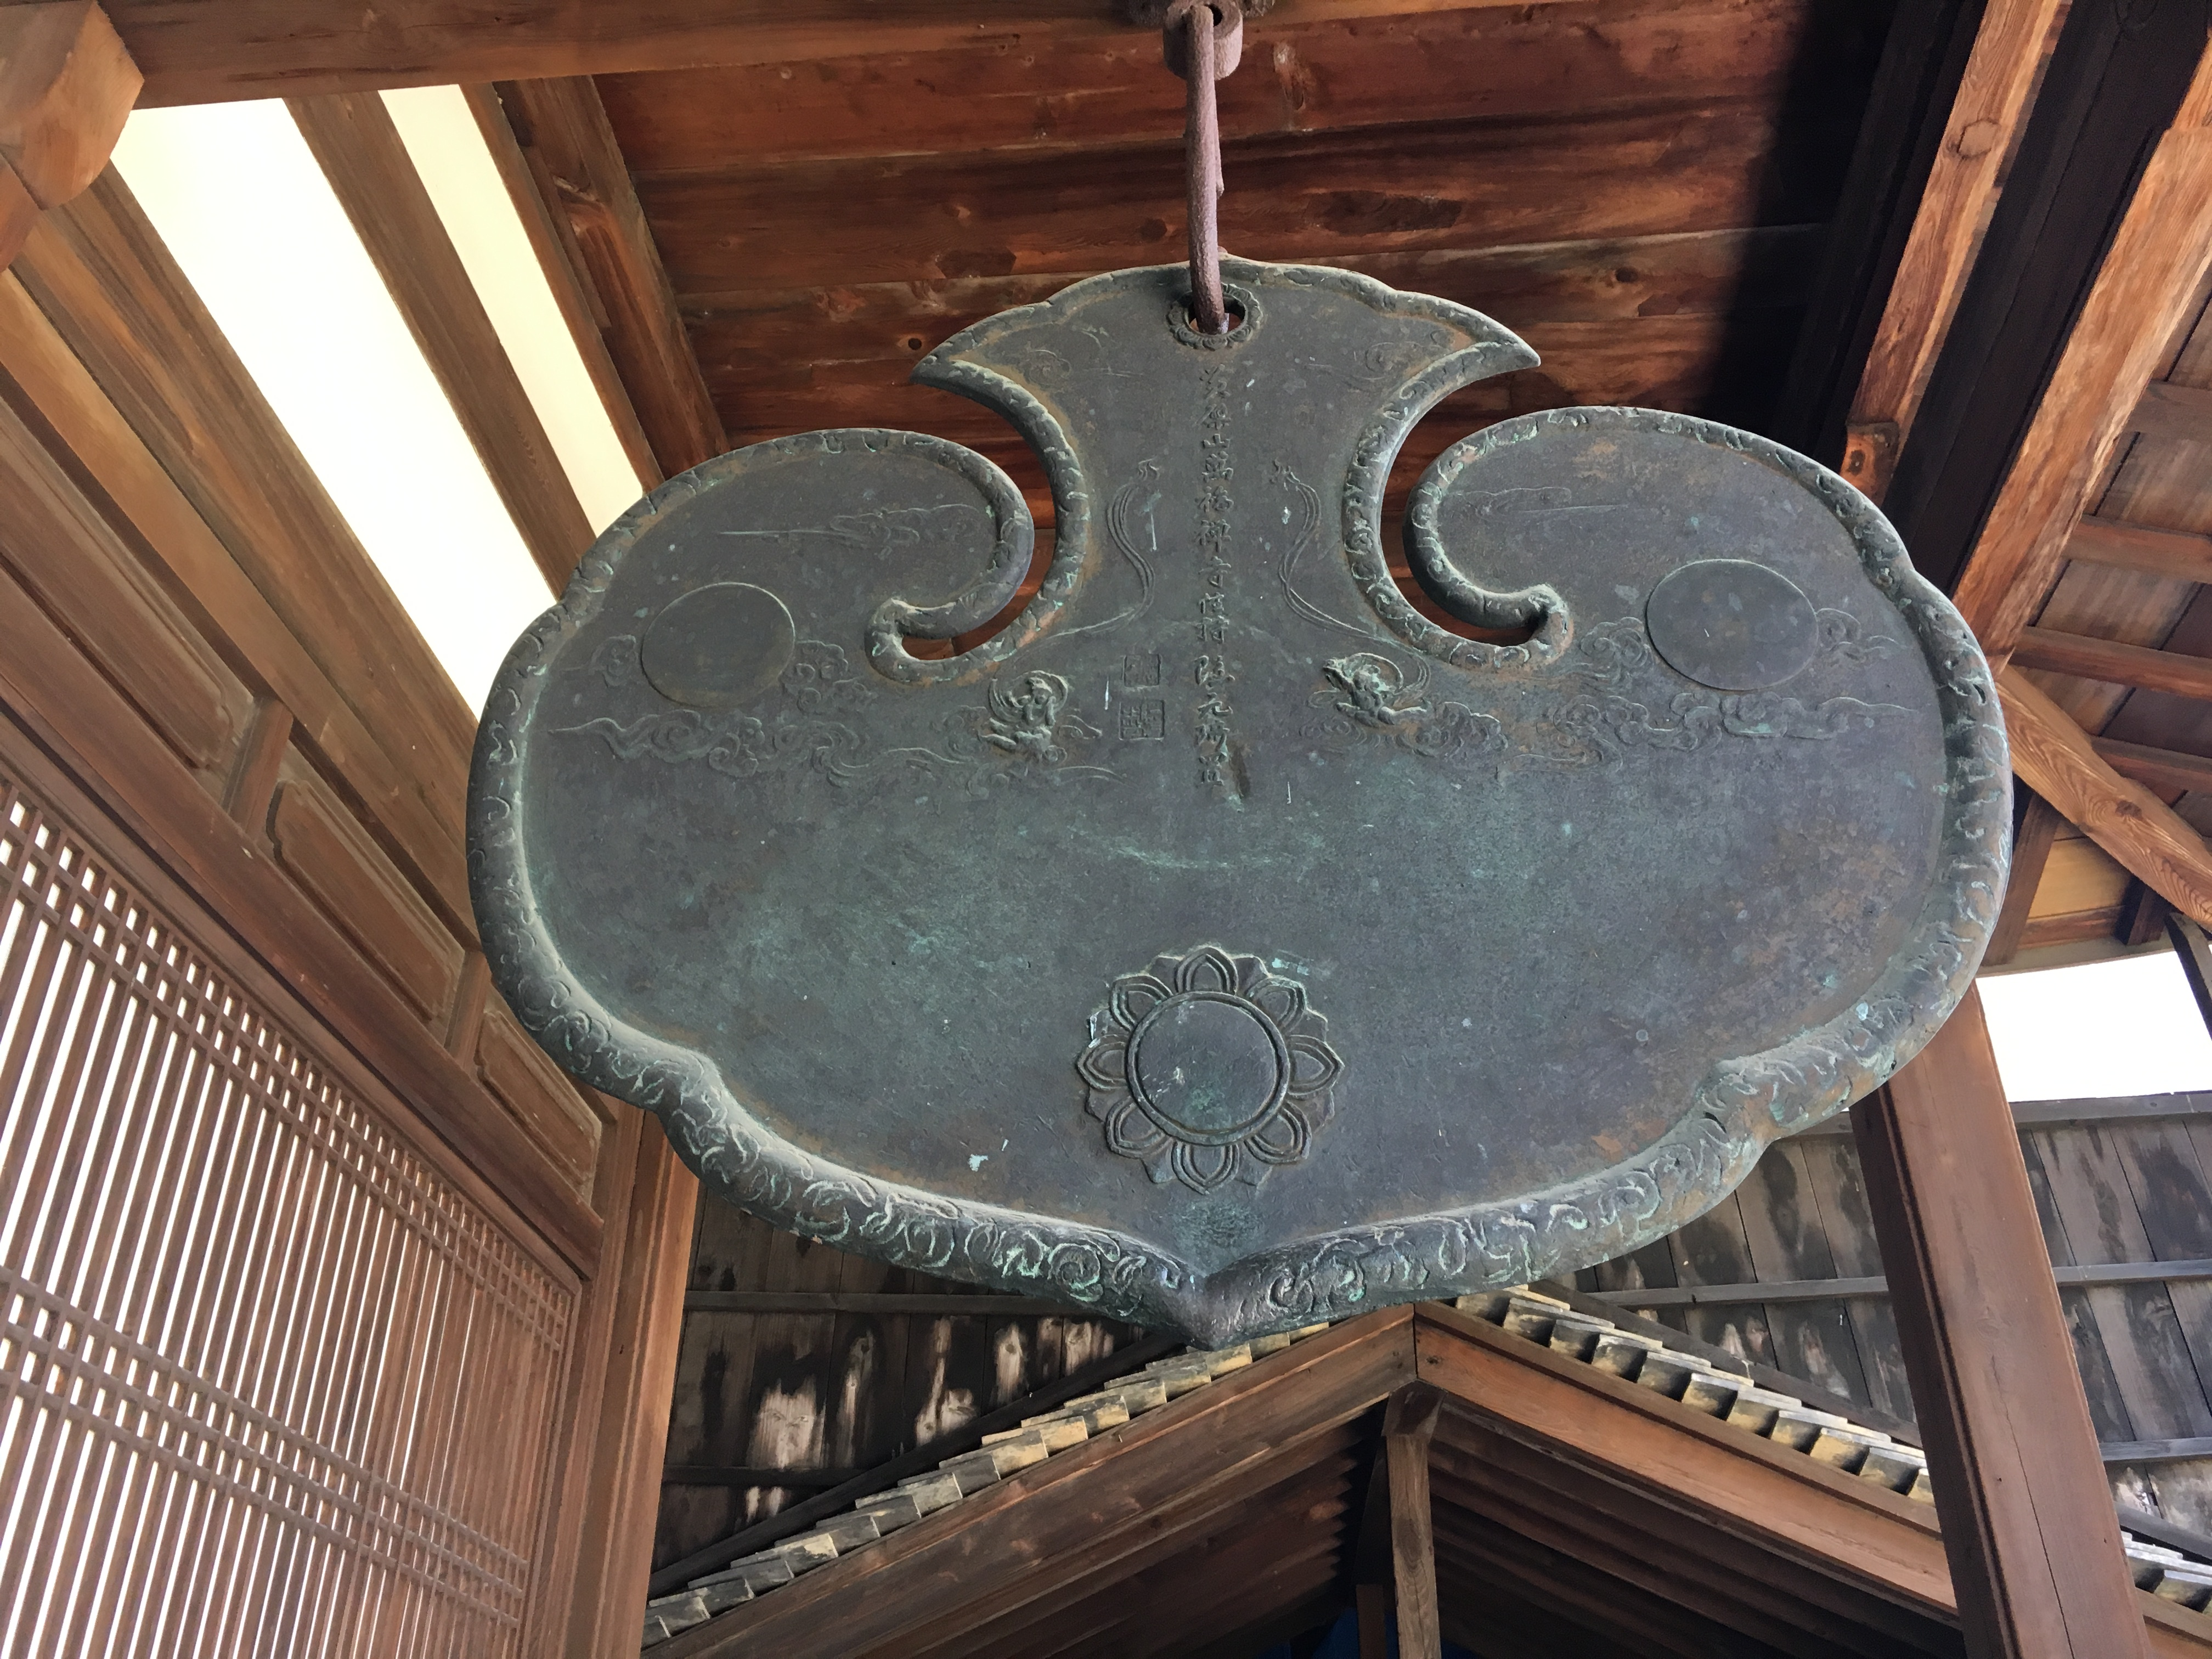 unusual spade shaped metal gong called an unpan at manpuku-ji temple